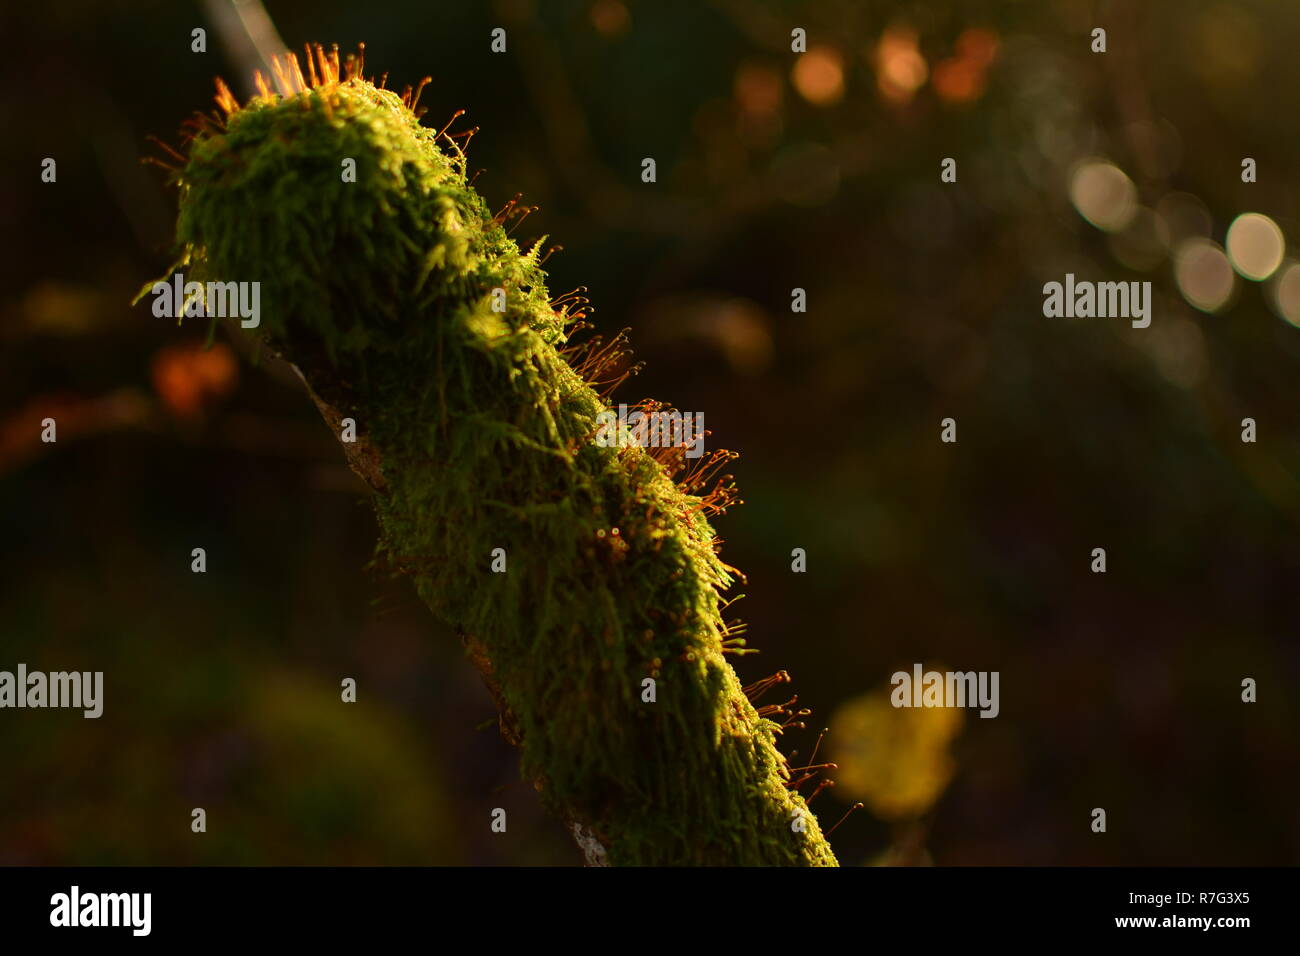 Moss closeup Lite by Sunset with Bokeh Background - Stock Image